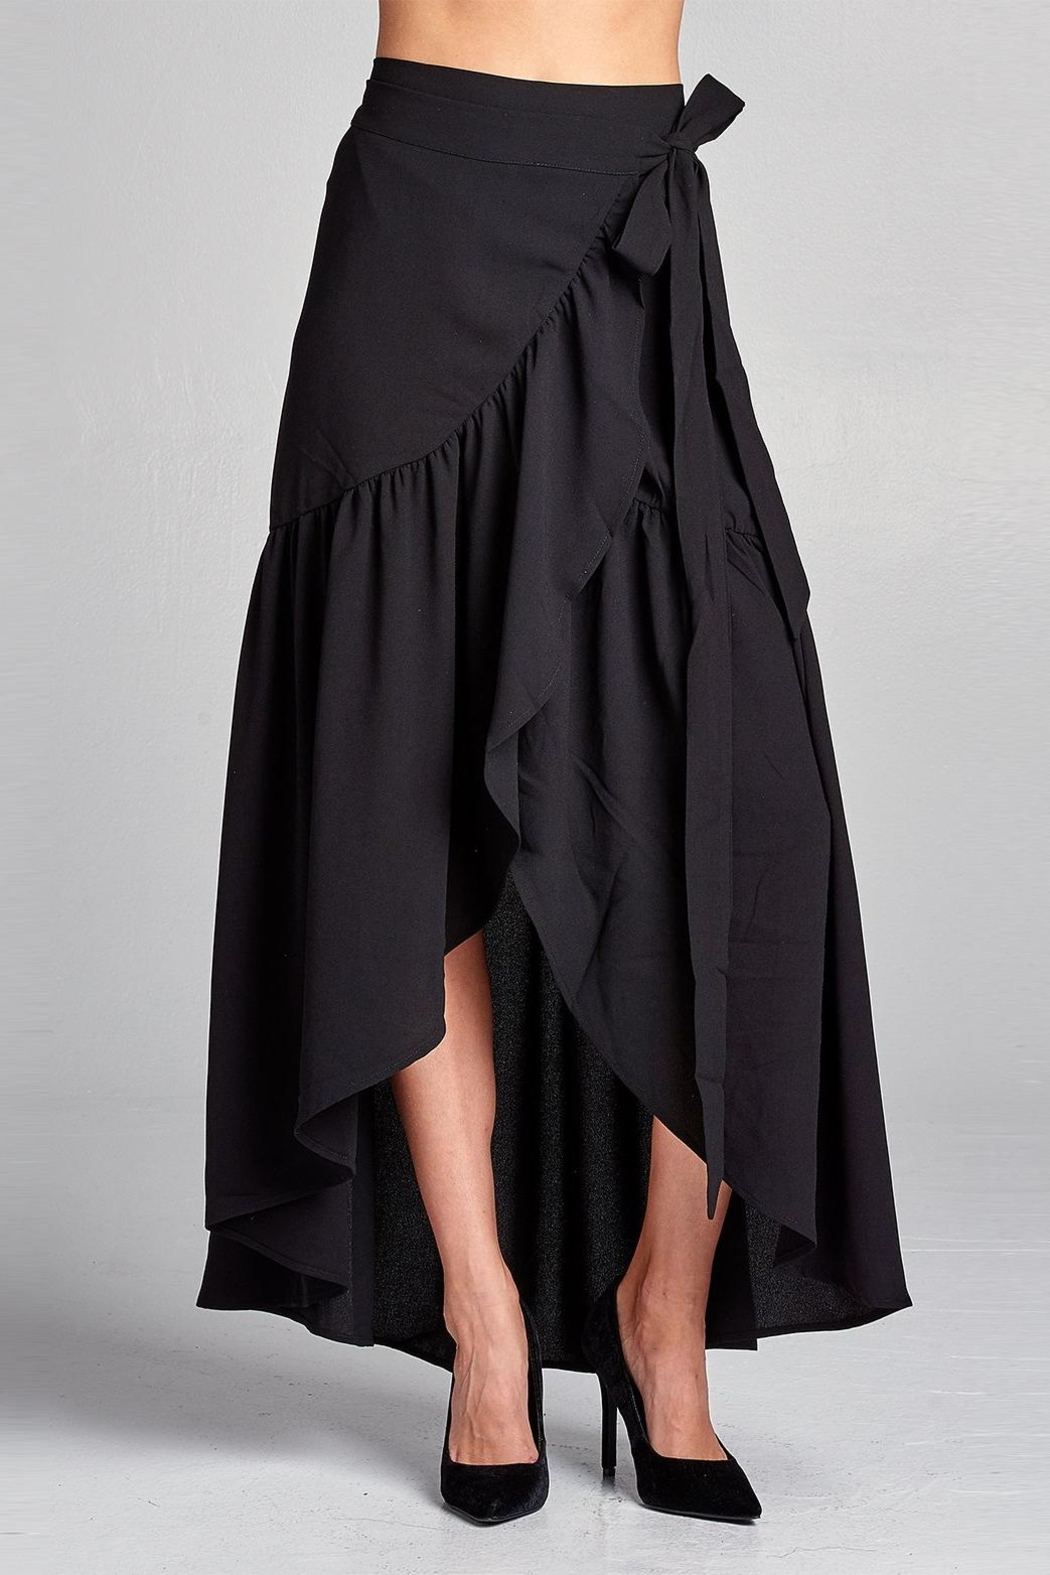 Love Kuza Frilled Wrap Skirt - Main Image